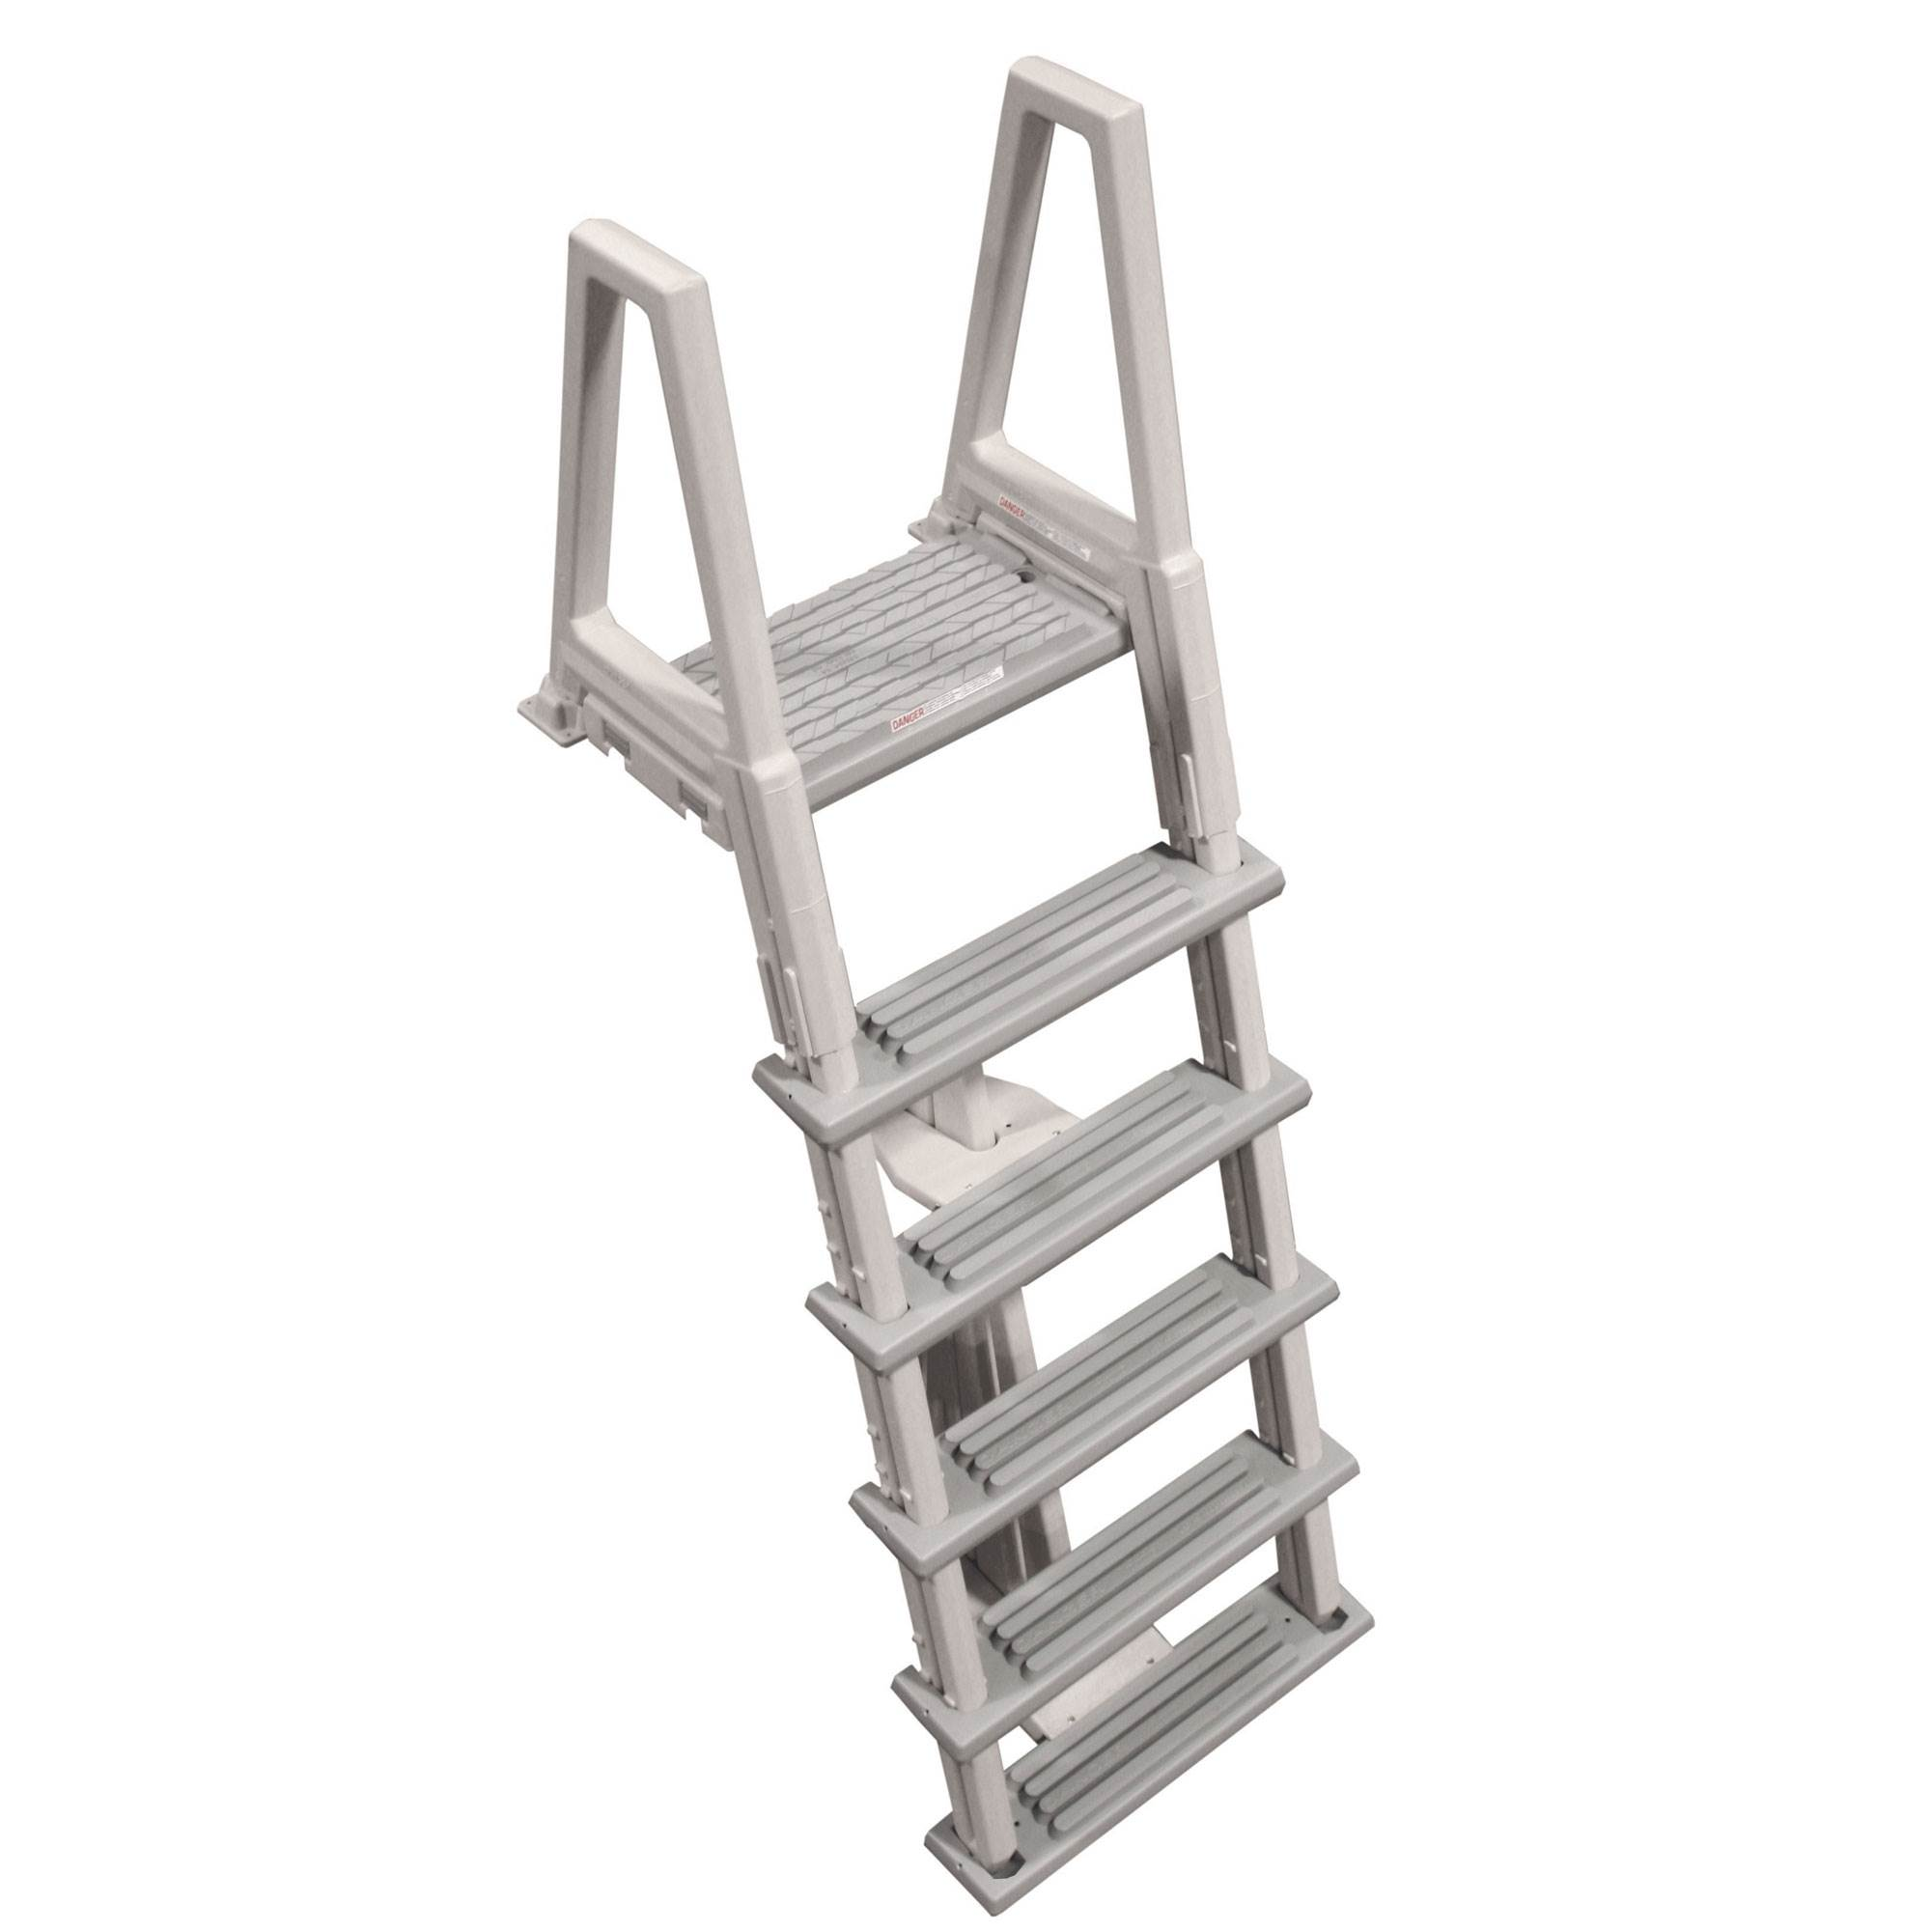 6000 In Pool Ladder 42-56 inch Deck Mount